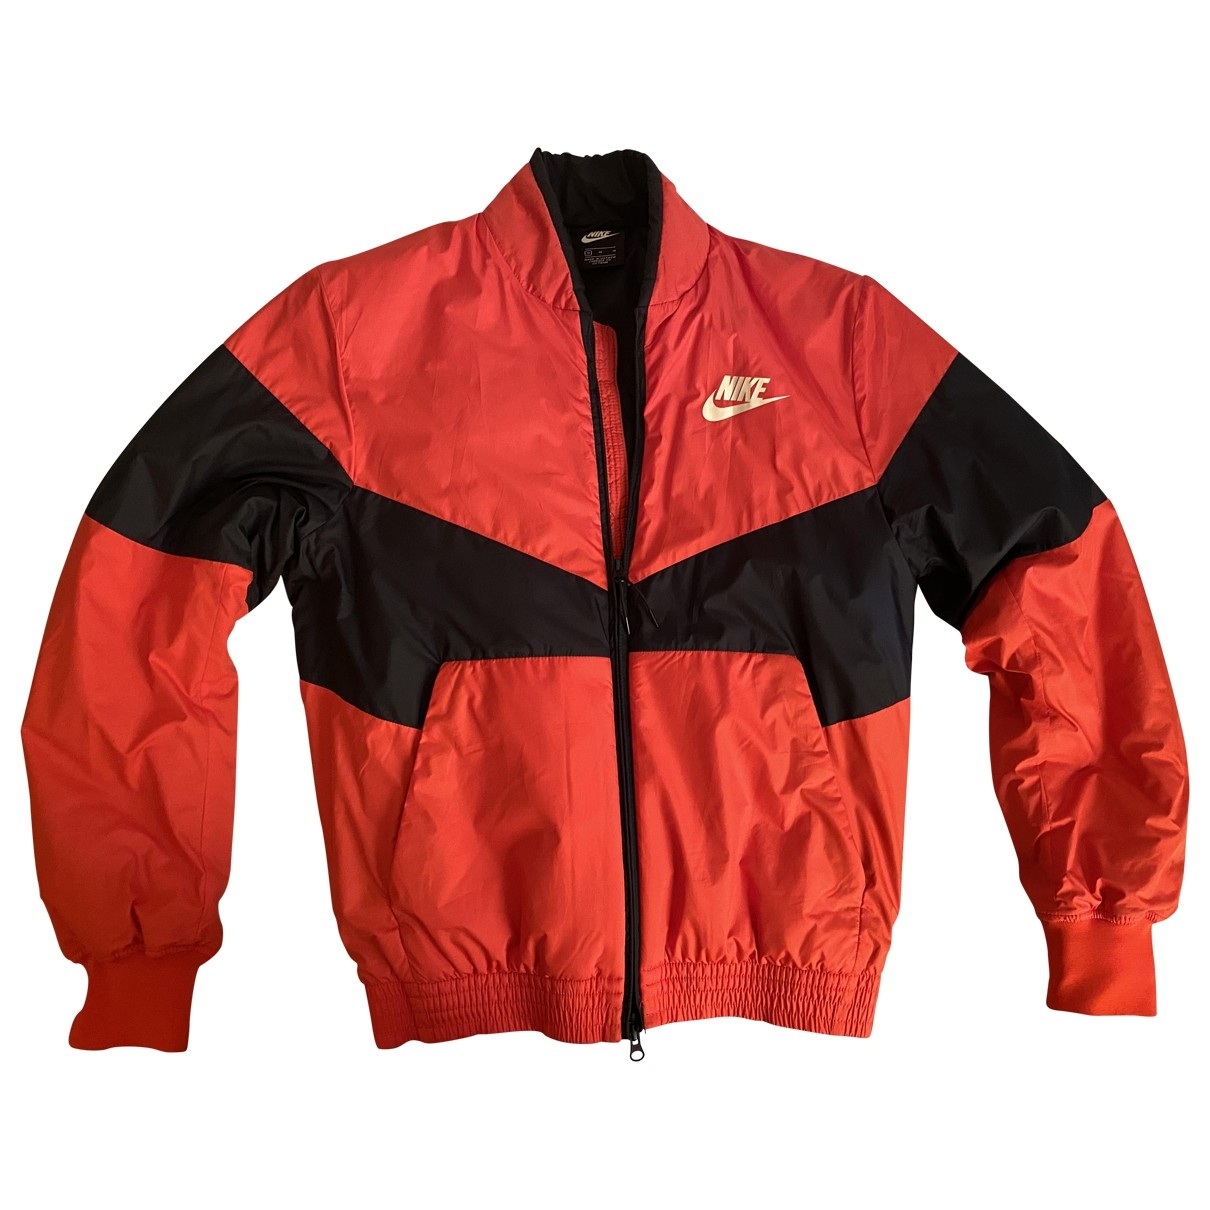 Nike \N Red jacket  for Men M International